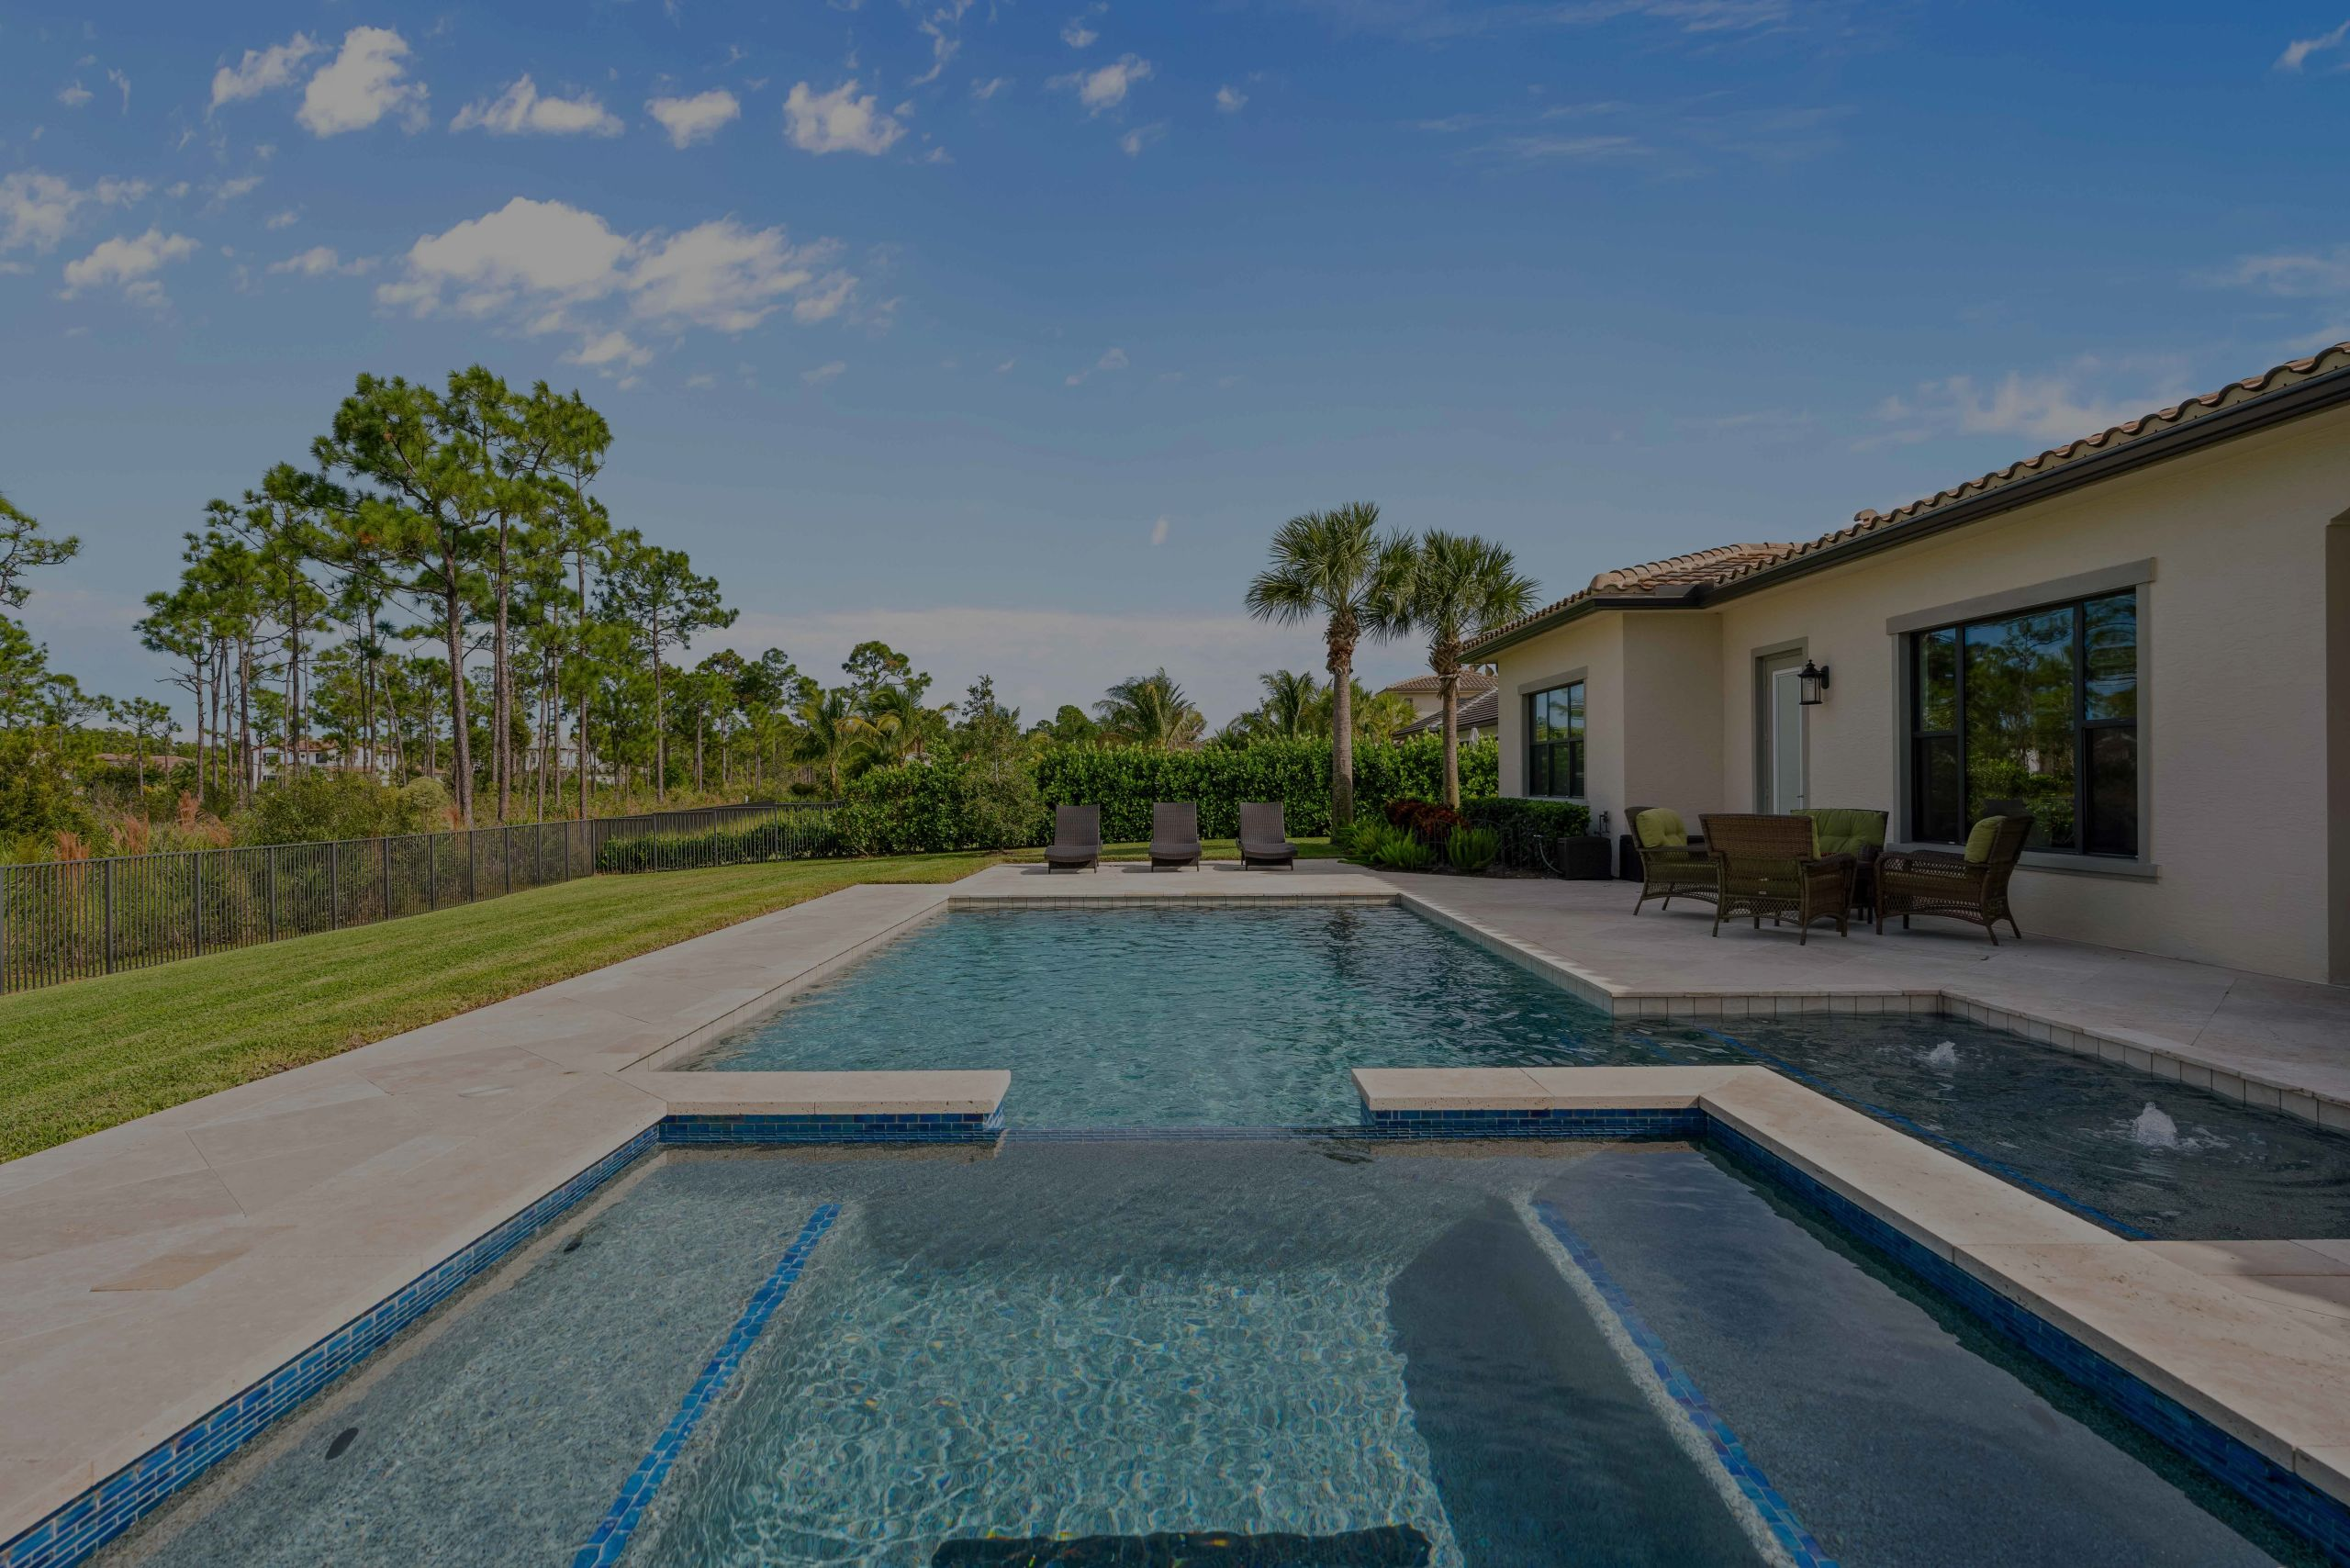 LUXURY MARKET REPORT FOR PALM BEACH COUNTY BEACH TOWNS